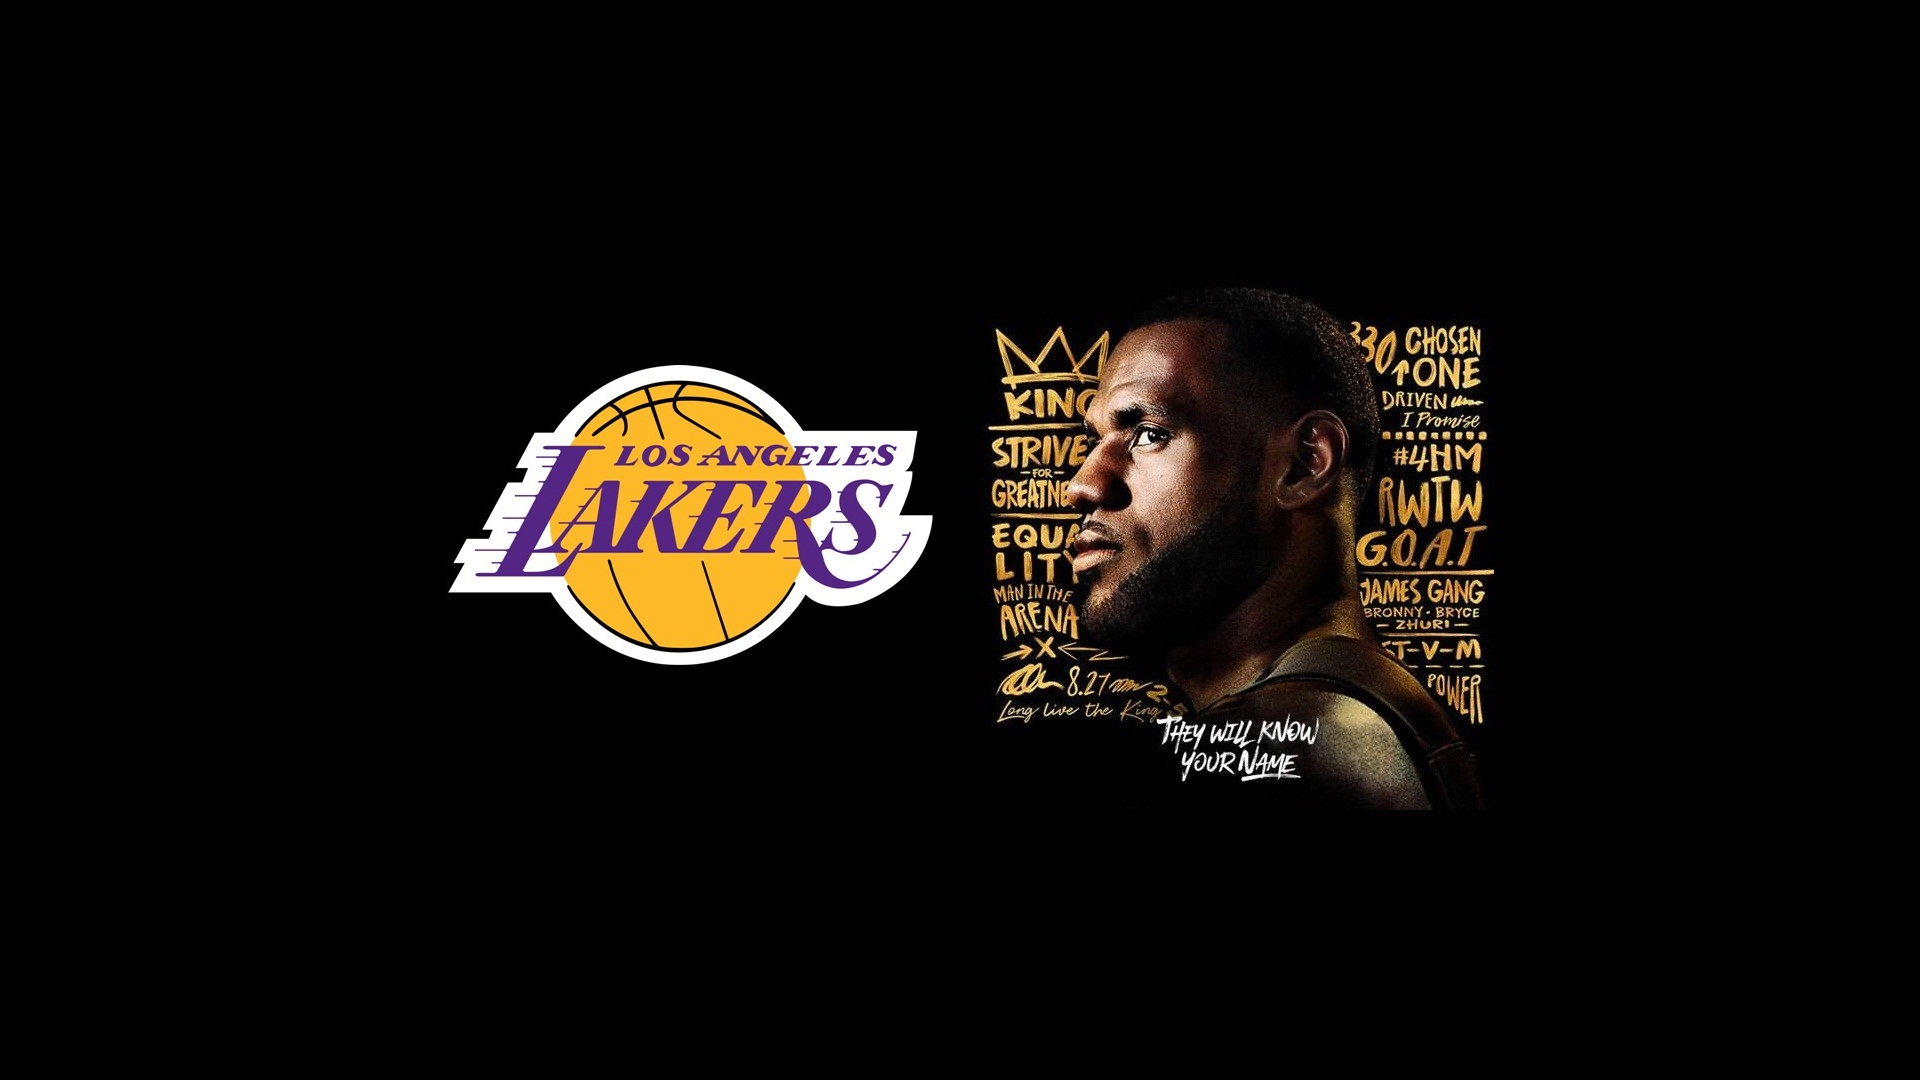 Hd Lebron James Lakers Wallpapers With Image Dimensions Angeles Lakers 1920x1080 Wallpaper Teahub Io